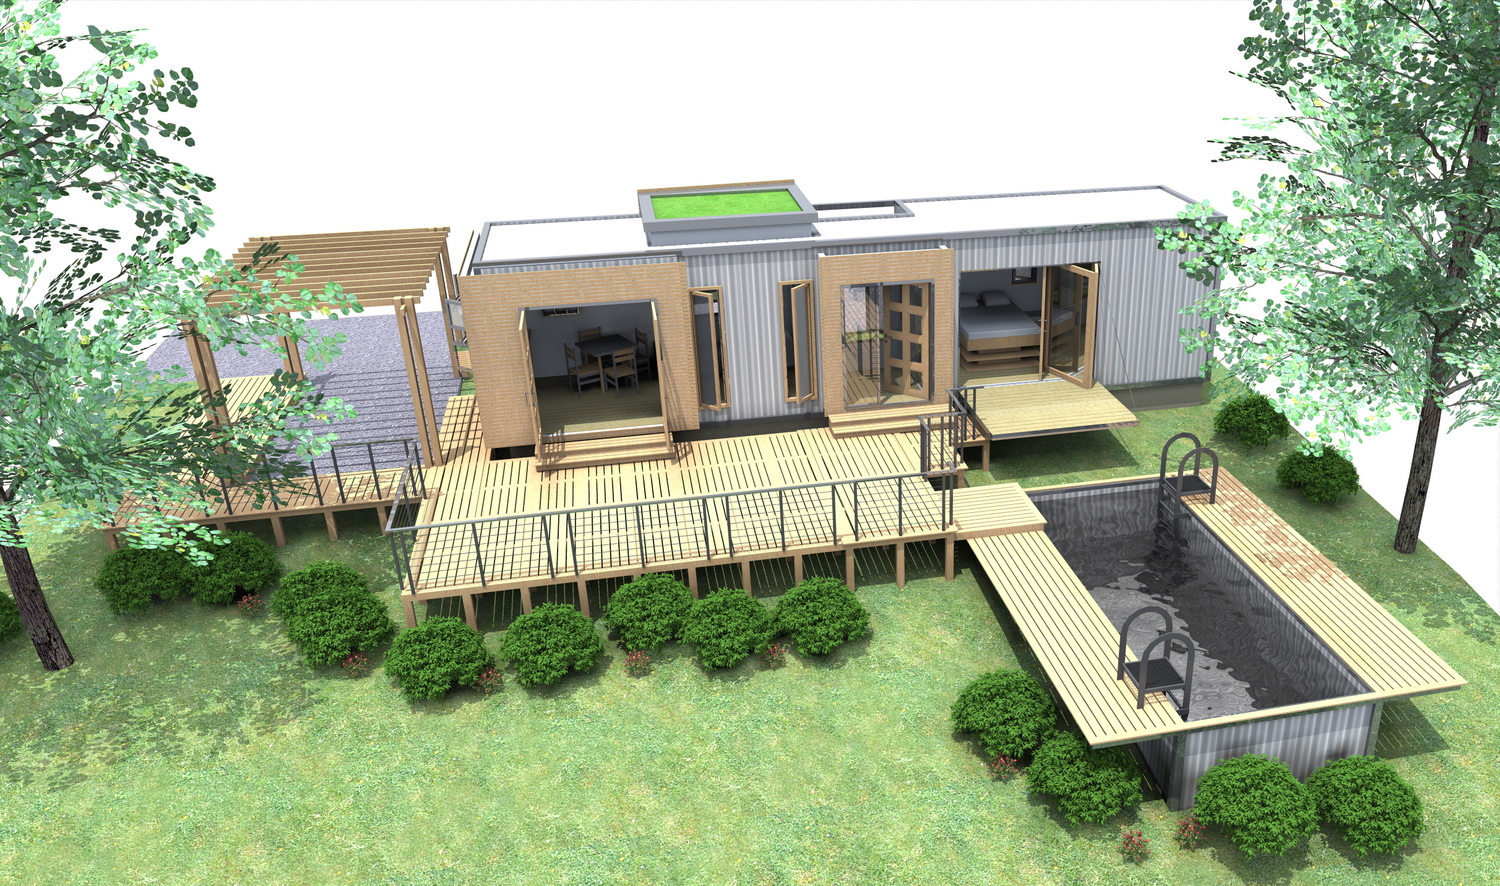 Shipping container homes 40ft shipping container home eco pig designs sch 1 devon uk - Cargo container home designs ...